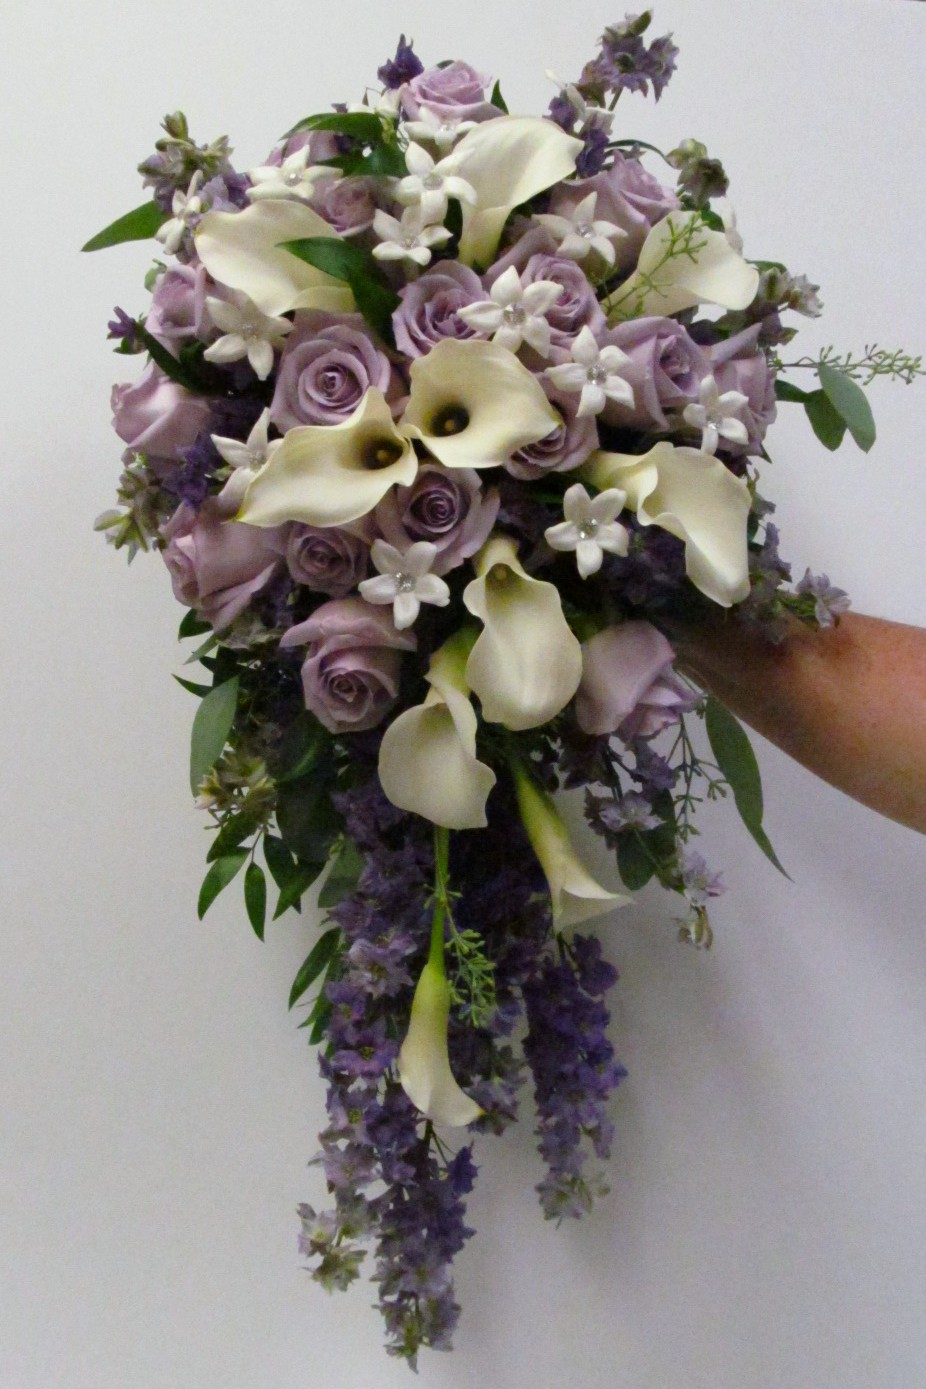 Wedding Flowers Blog: Hayley's wedding flowers, Ivory and ... |Lily Bridal Bouquets